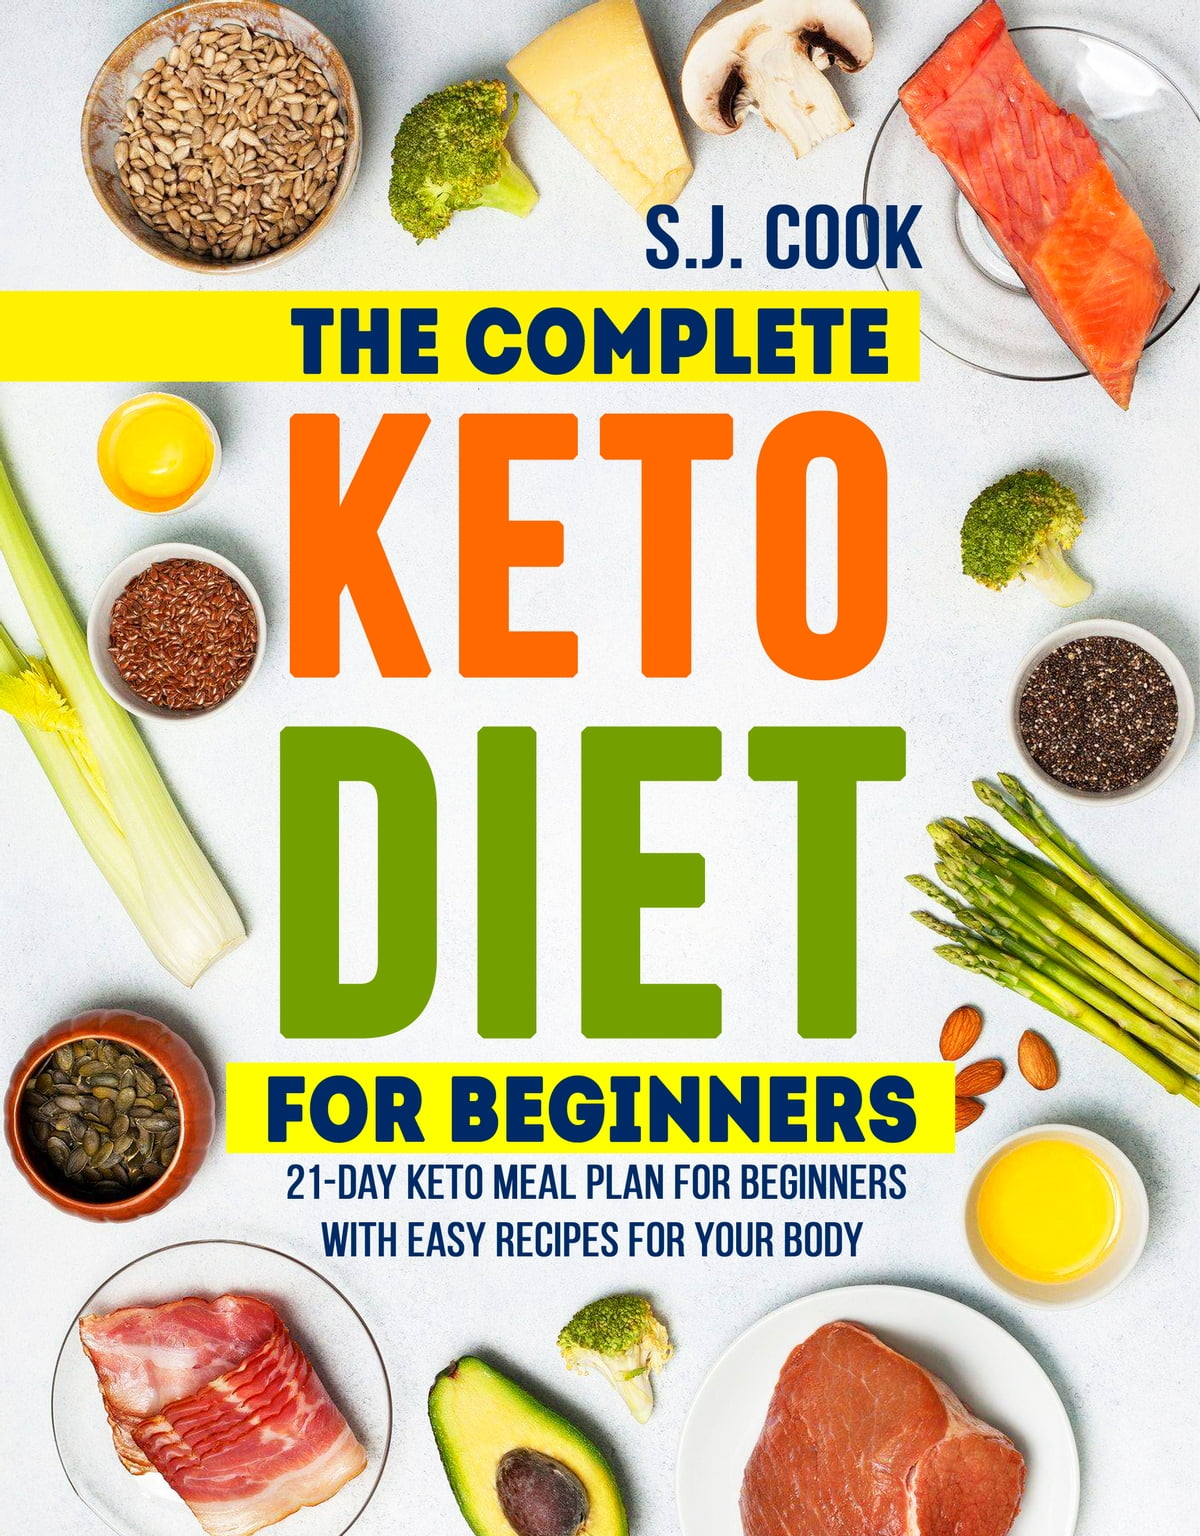 Keto Diet Plan For Beginners - Atkins